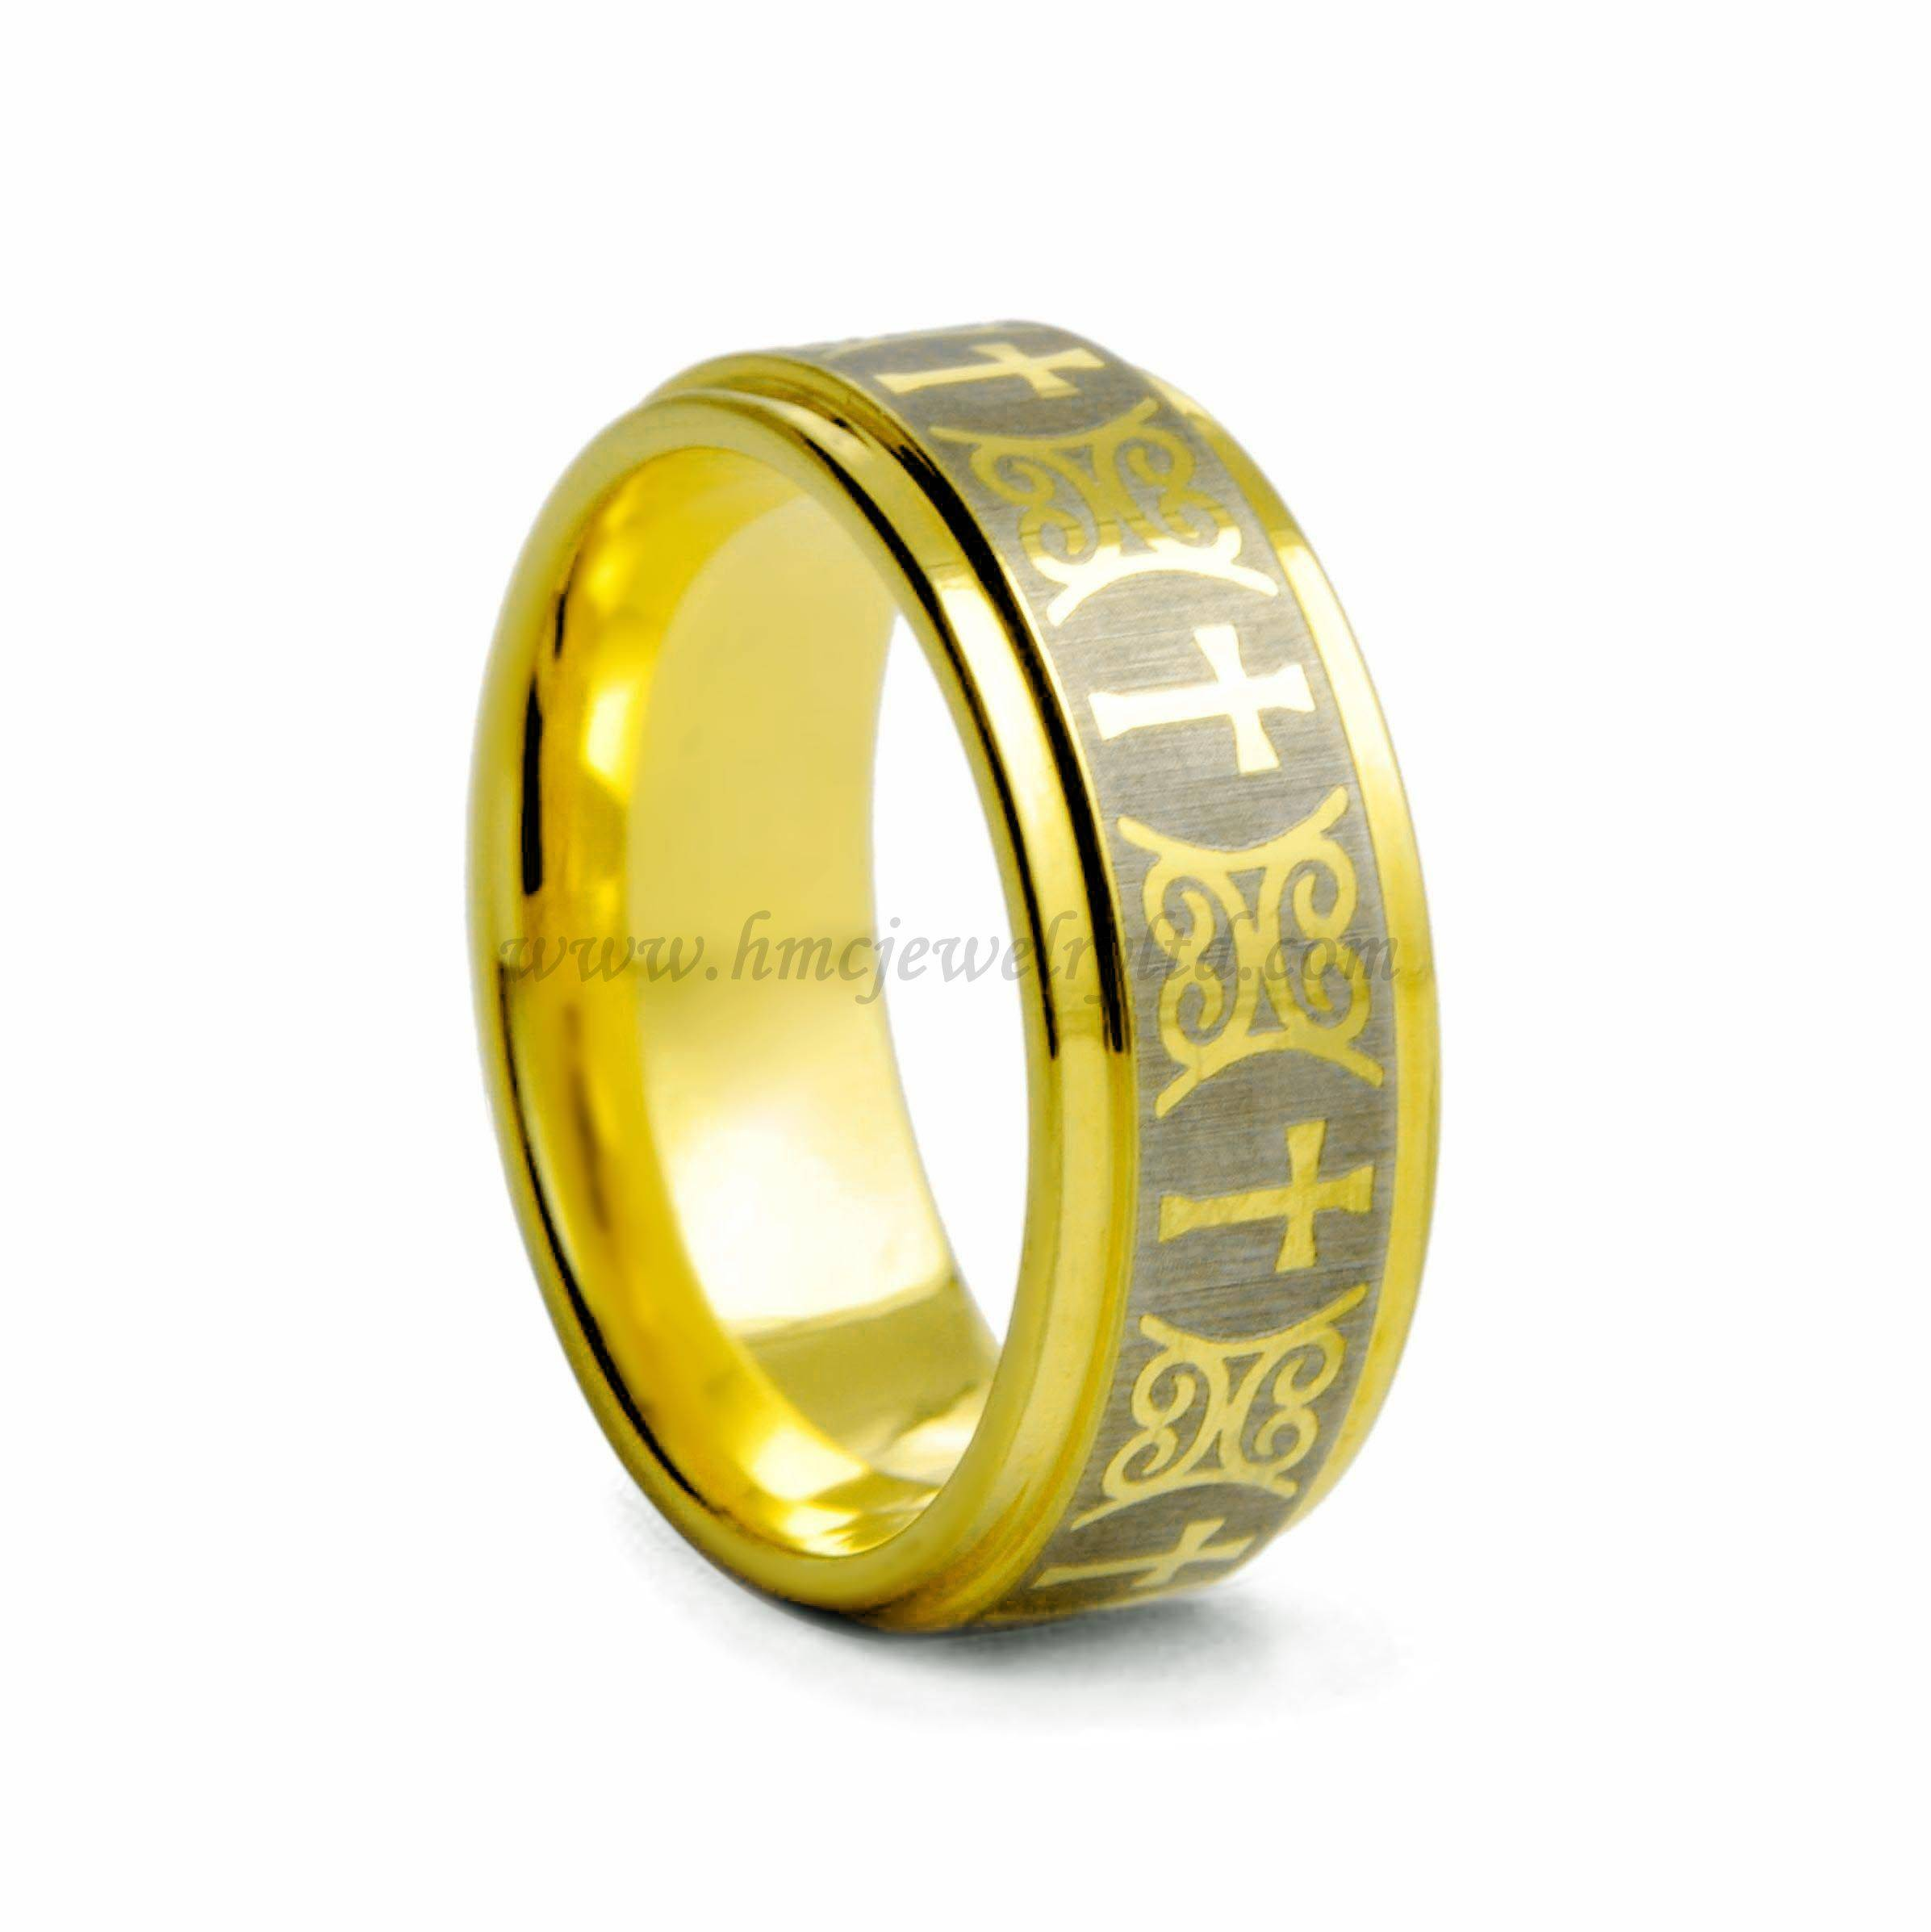 Men's Catholic Rings, Gold Plated Religious Tungsten Cross Rings